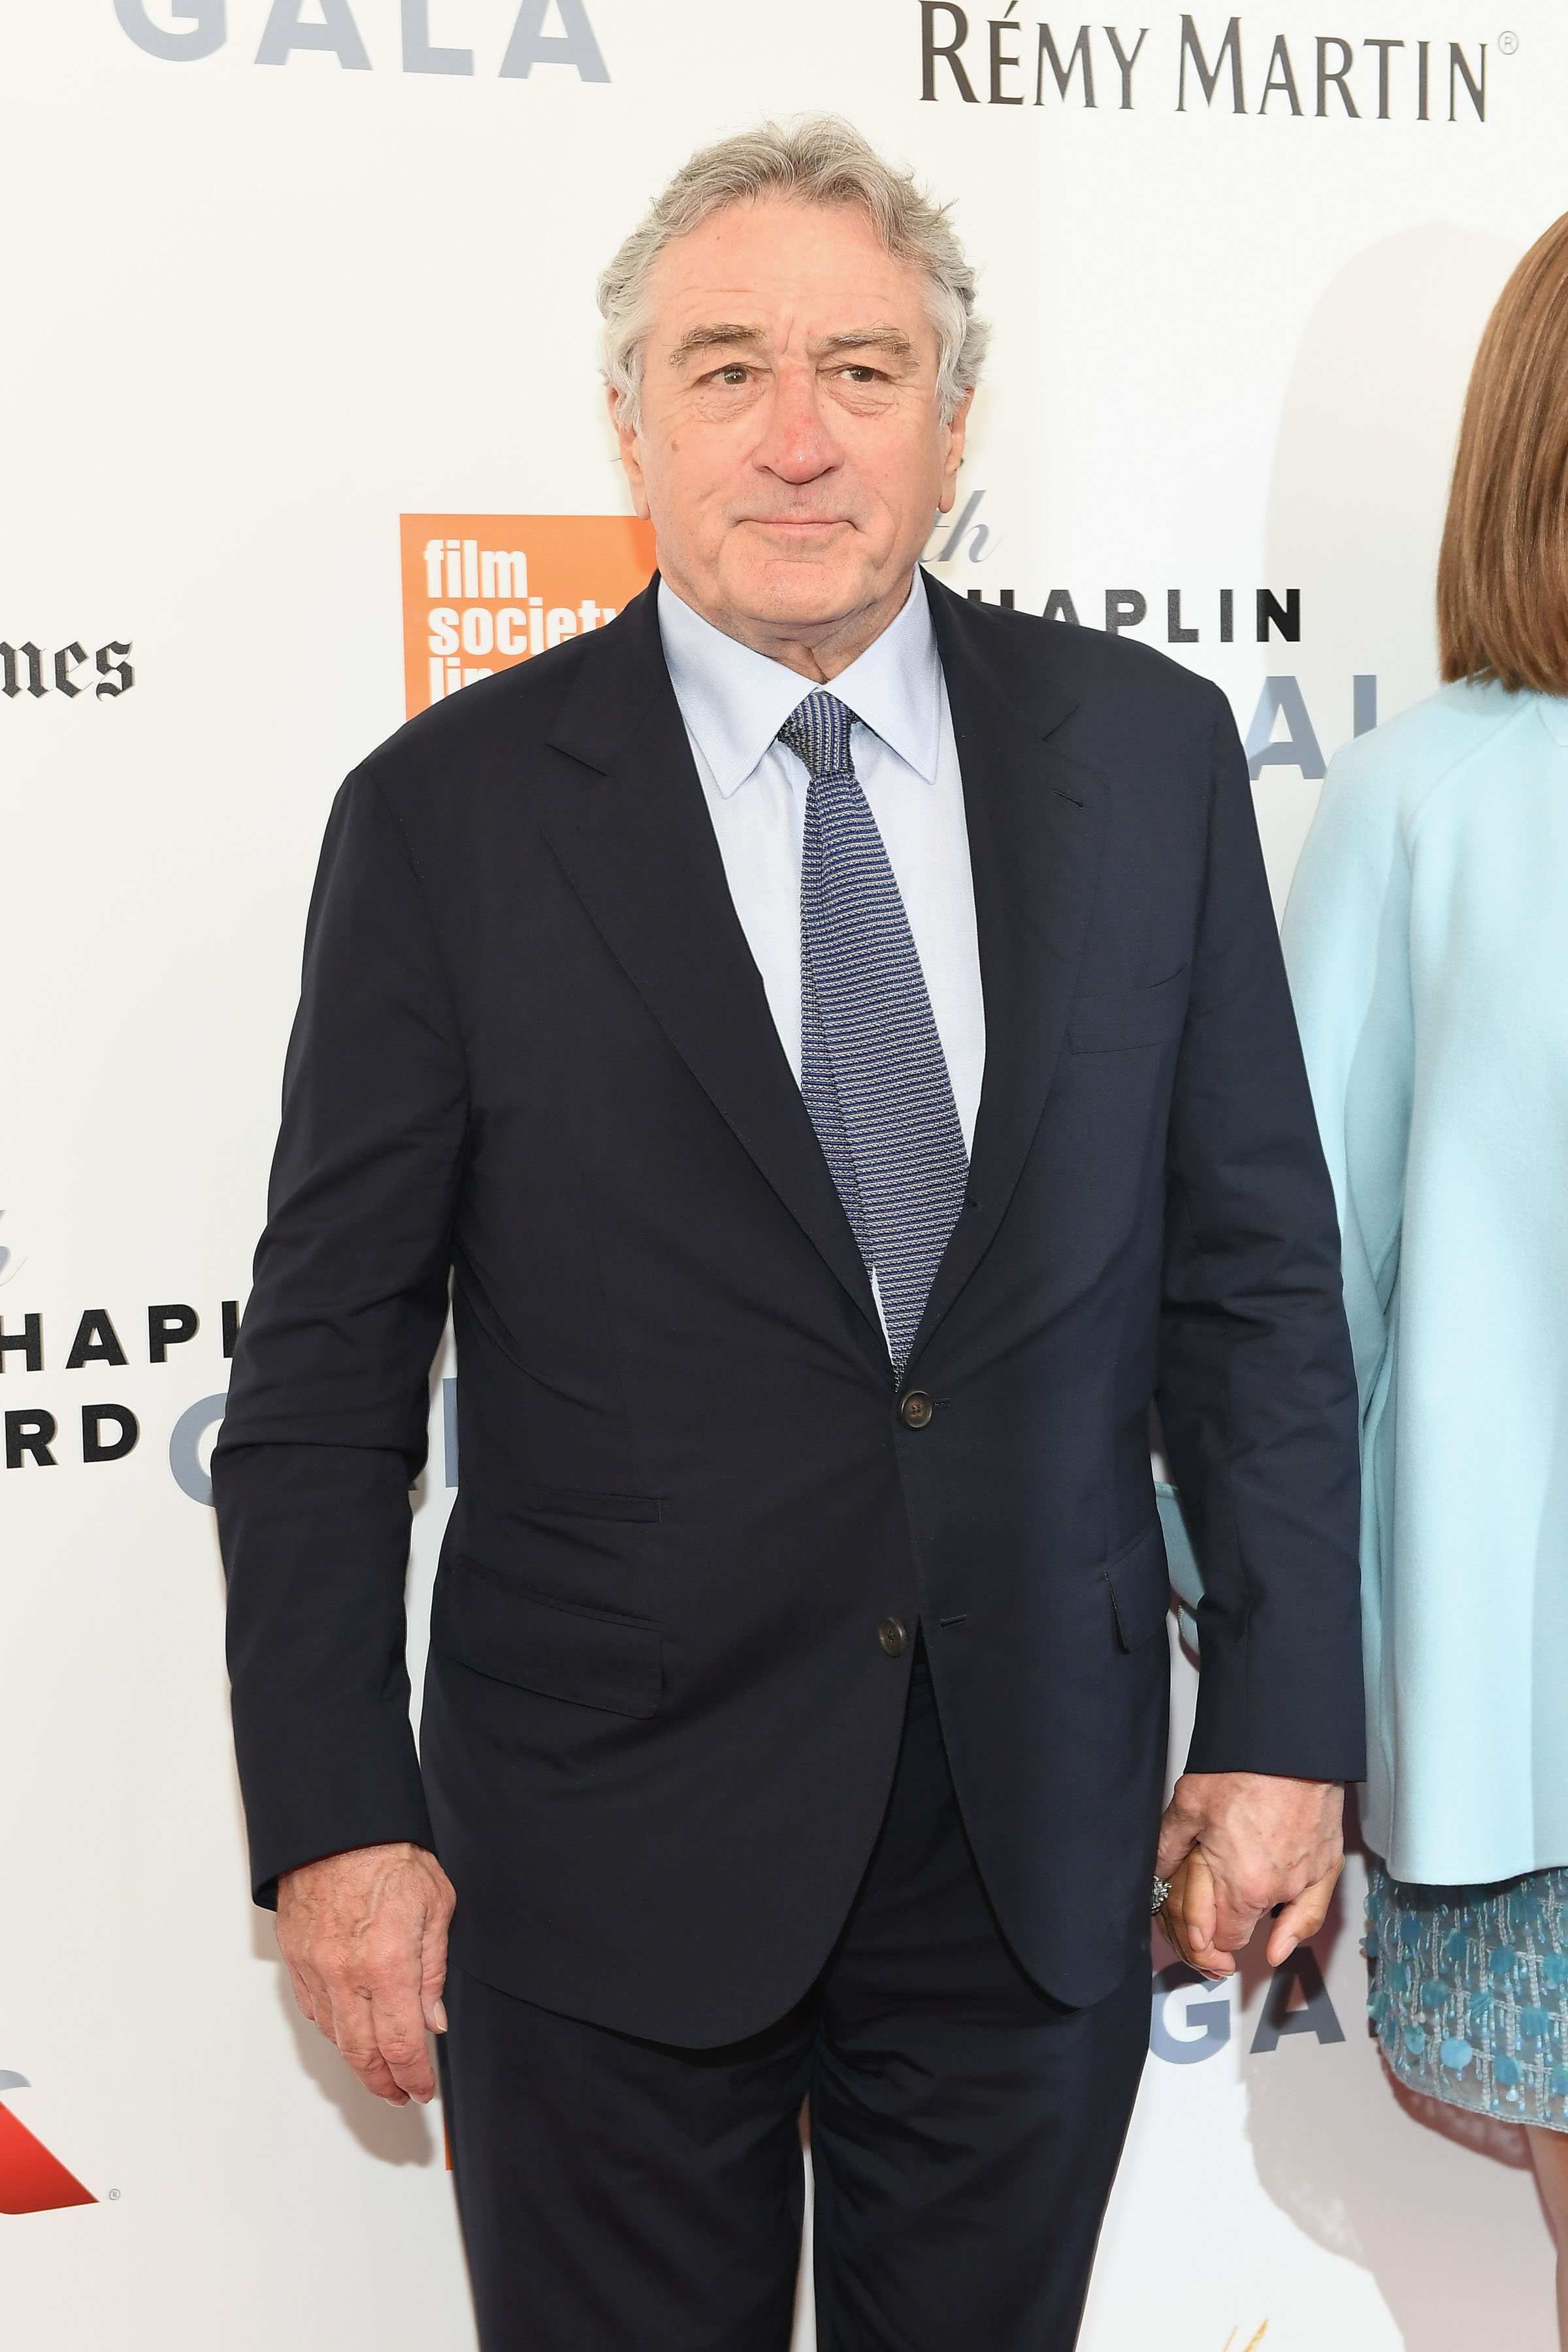 Robert De Niro attends the 44th Chaplin Award Gala at David H. Koch Theater at Lincoln Center on May 8, 2017 in New York City